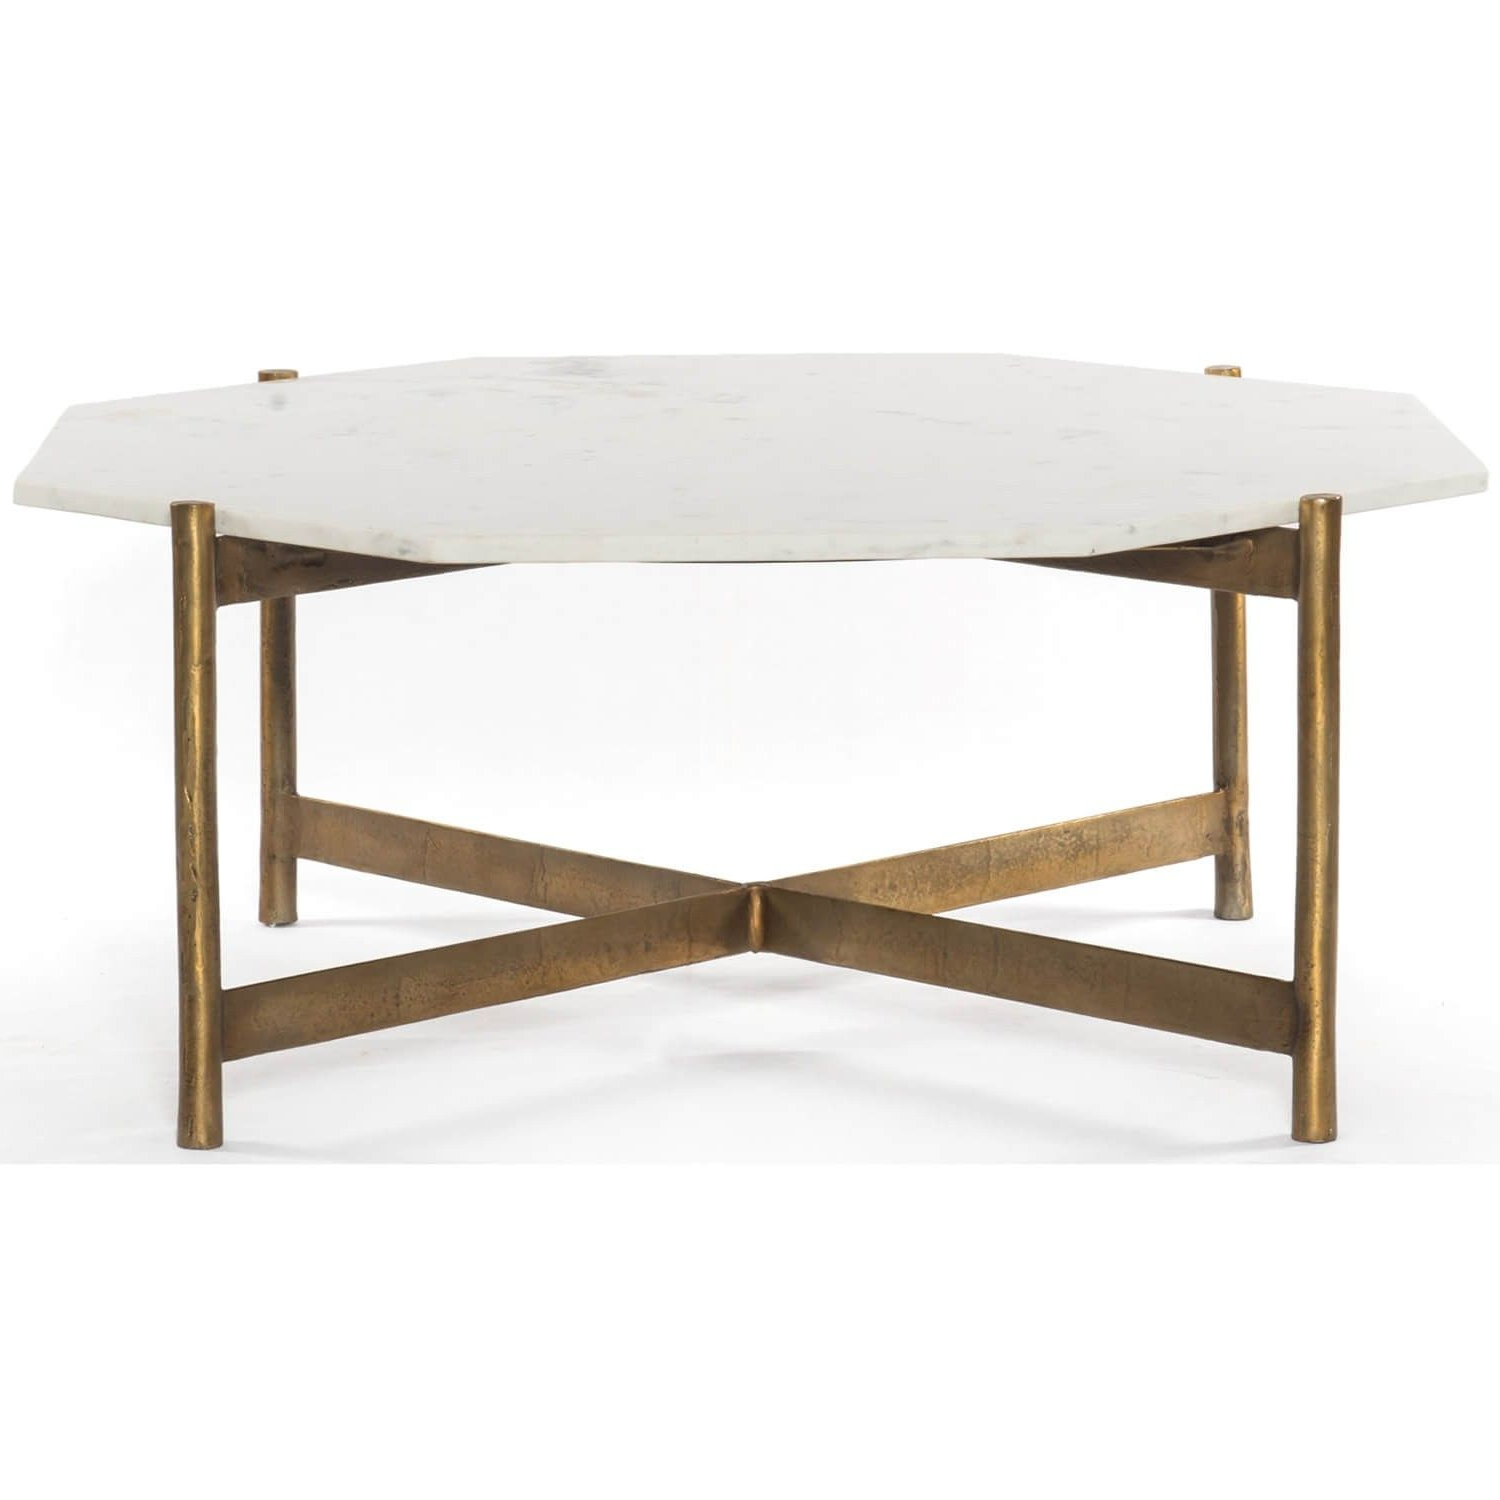 Adair Coffee Table, Raw Brass – Coffee Tables – Accent Tables Pertaining To Most Up To Date Slab Large Marble Coffee Tables With Brass Base (Gallery 1 of 20)